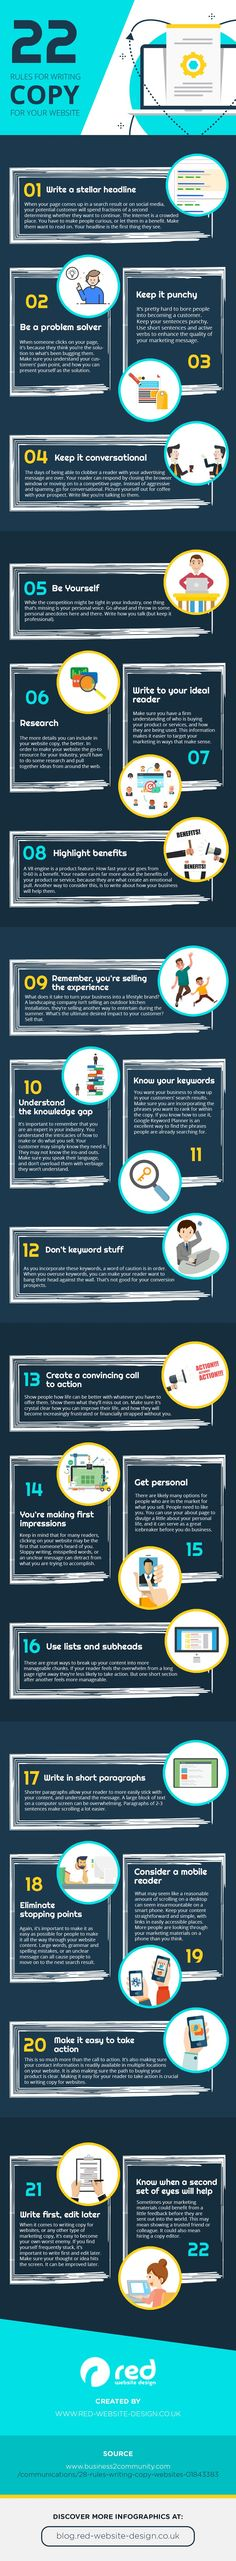 Get Your Words Right! 22 Rules for Writing Copy for Your Website #Infographic #WebDesign